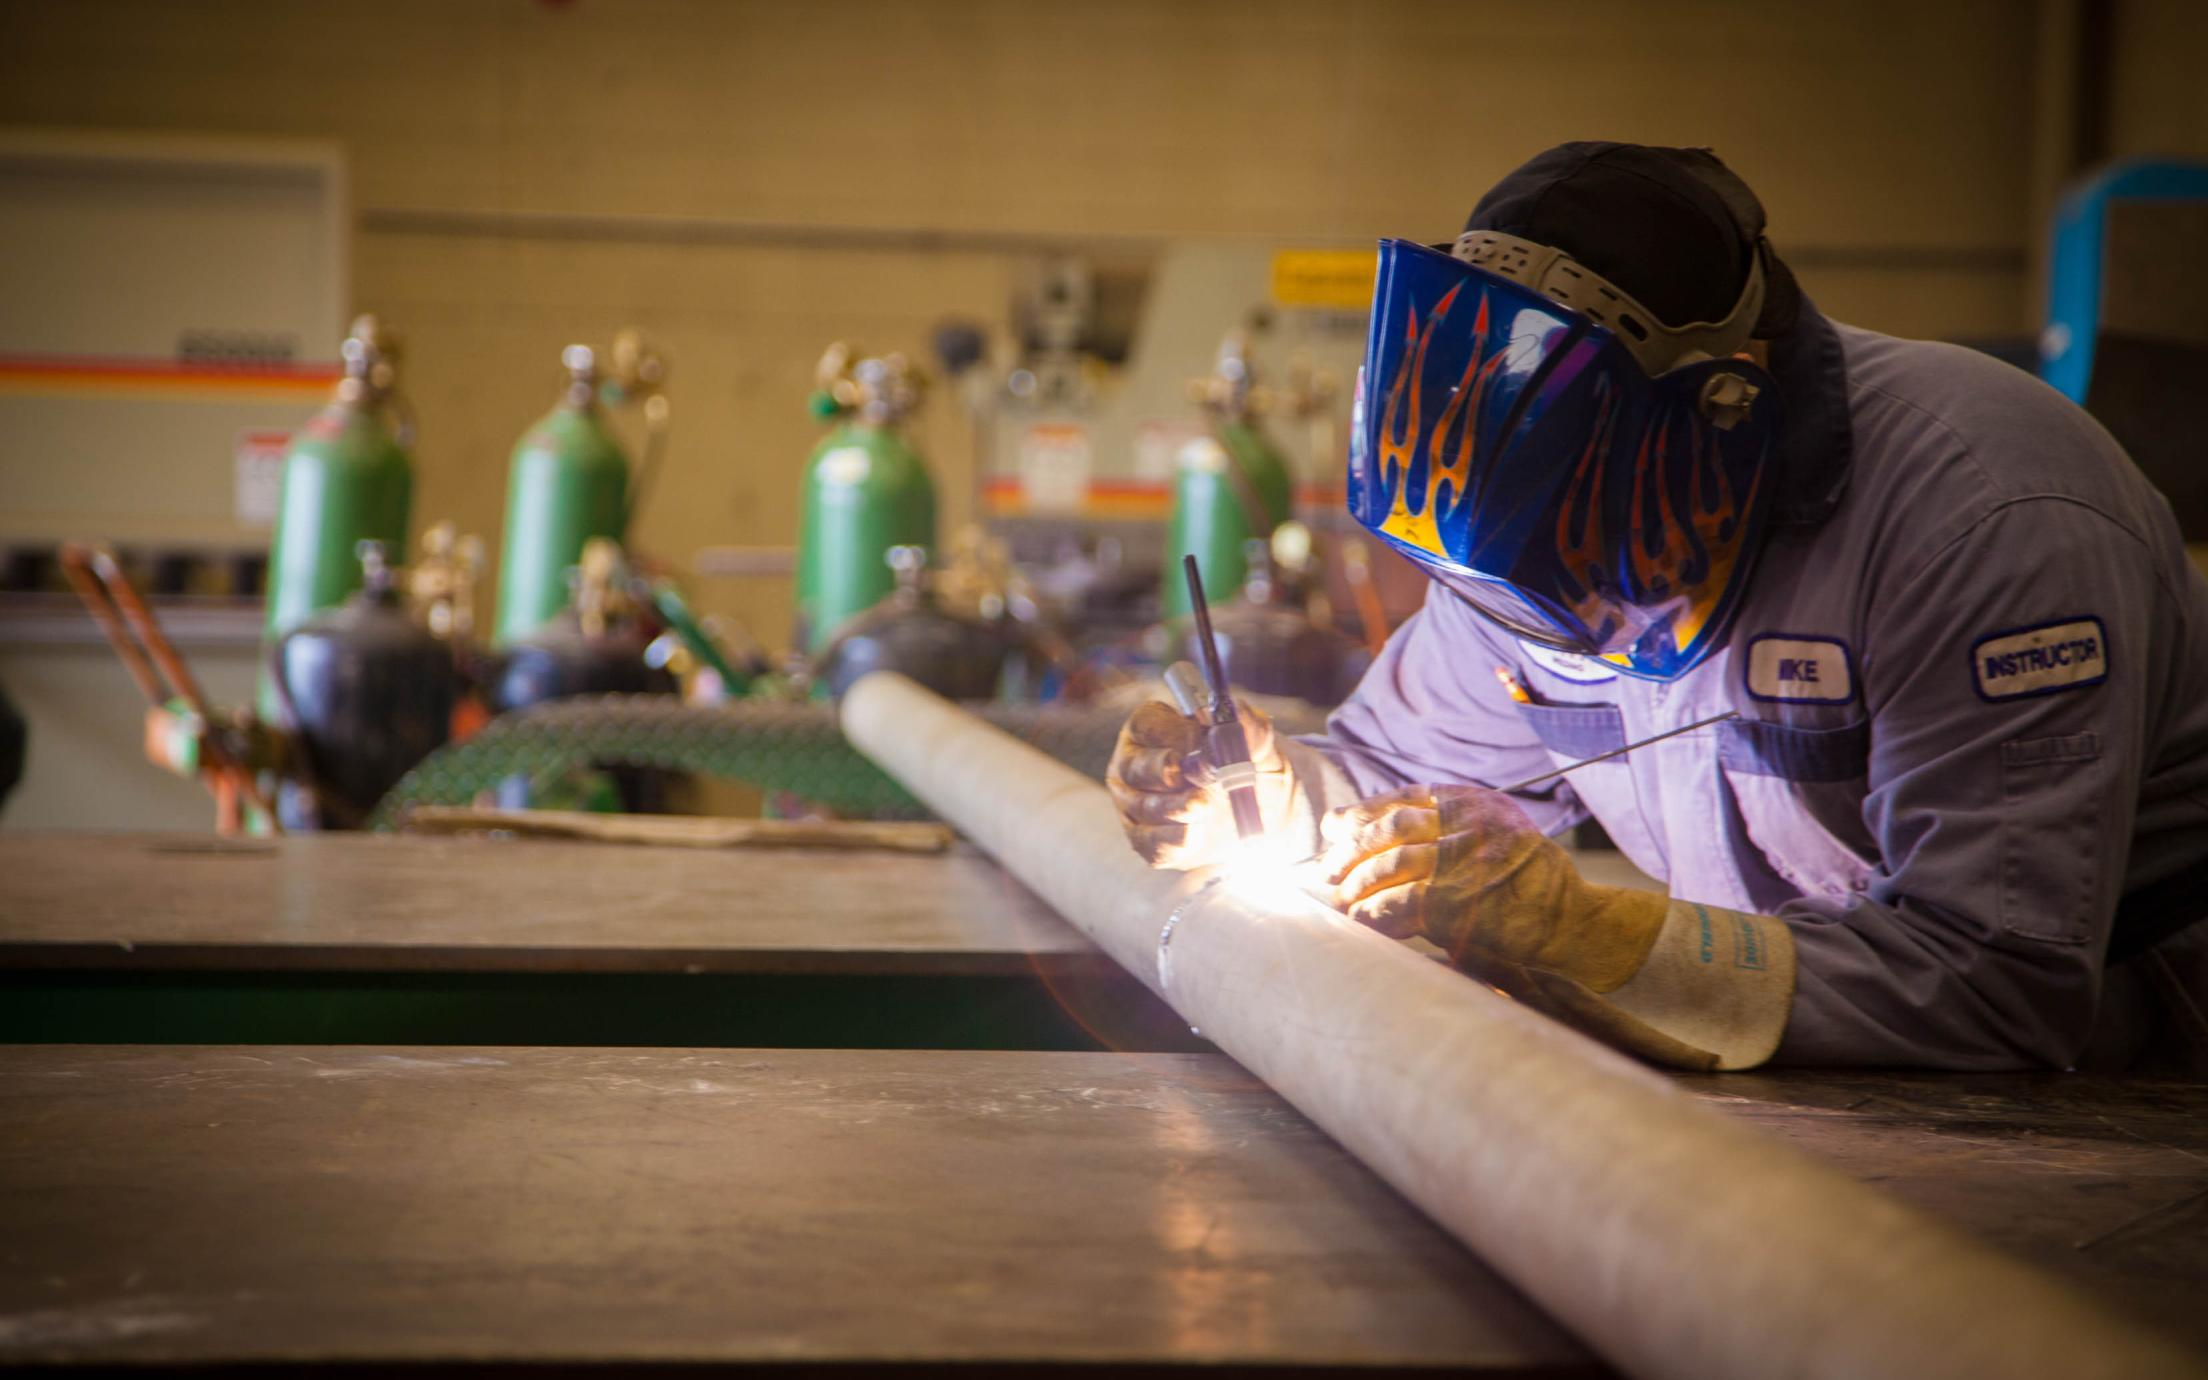 Welding courses provide students with proficient practical knowledge